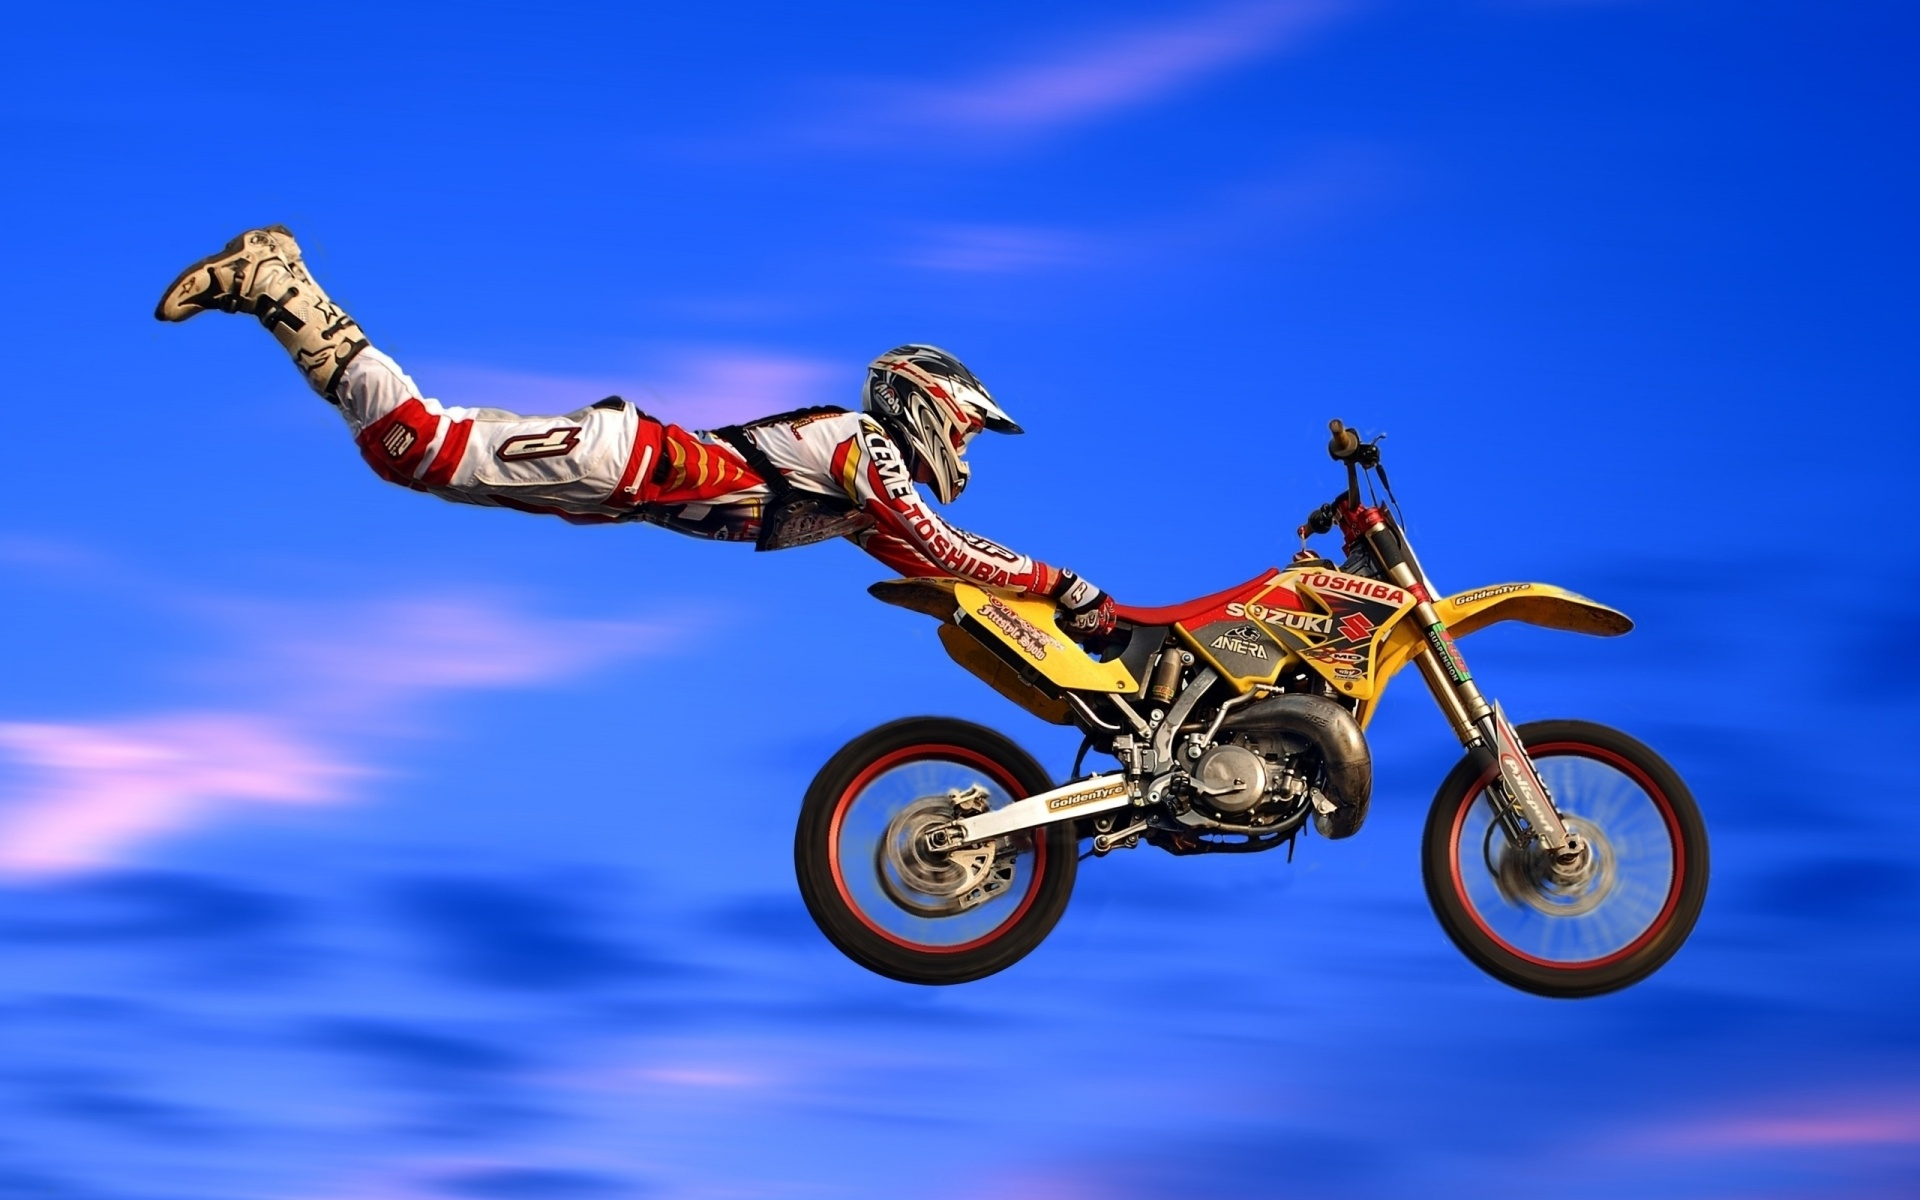 Moto Acrobatic Figure Sports Hd Wallpapers